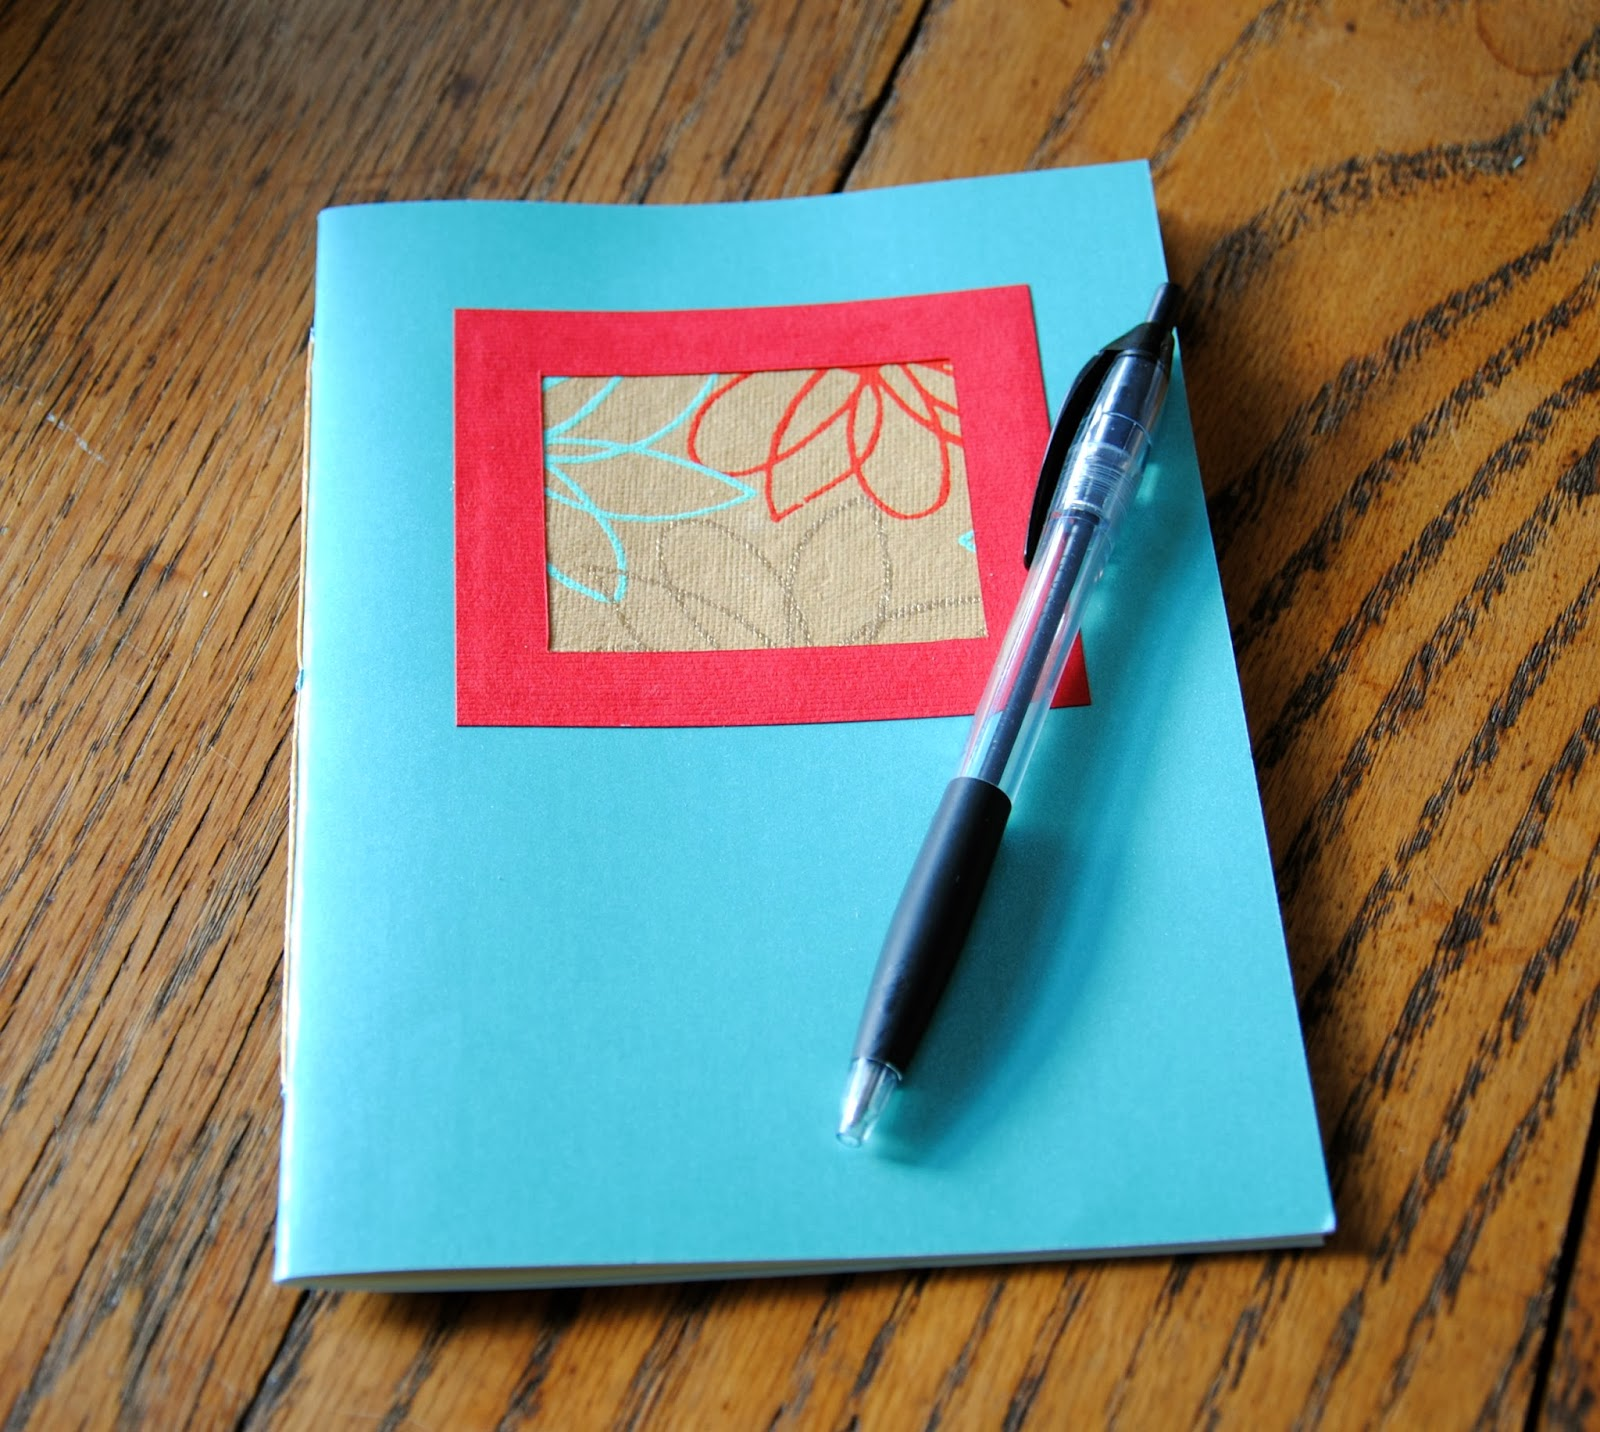 https://www.etsy.com/listing/181601051/lined-notebook-5x7-in-red-and-aqua?ref=listing-shop-header-0